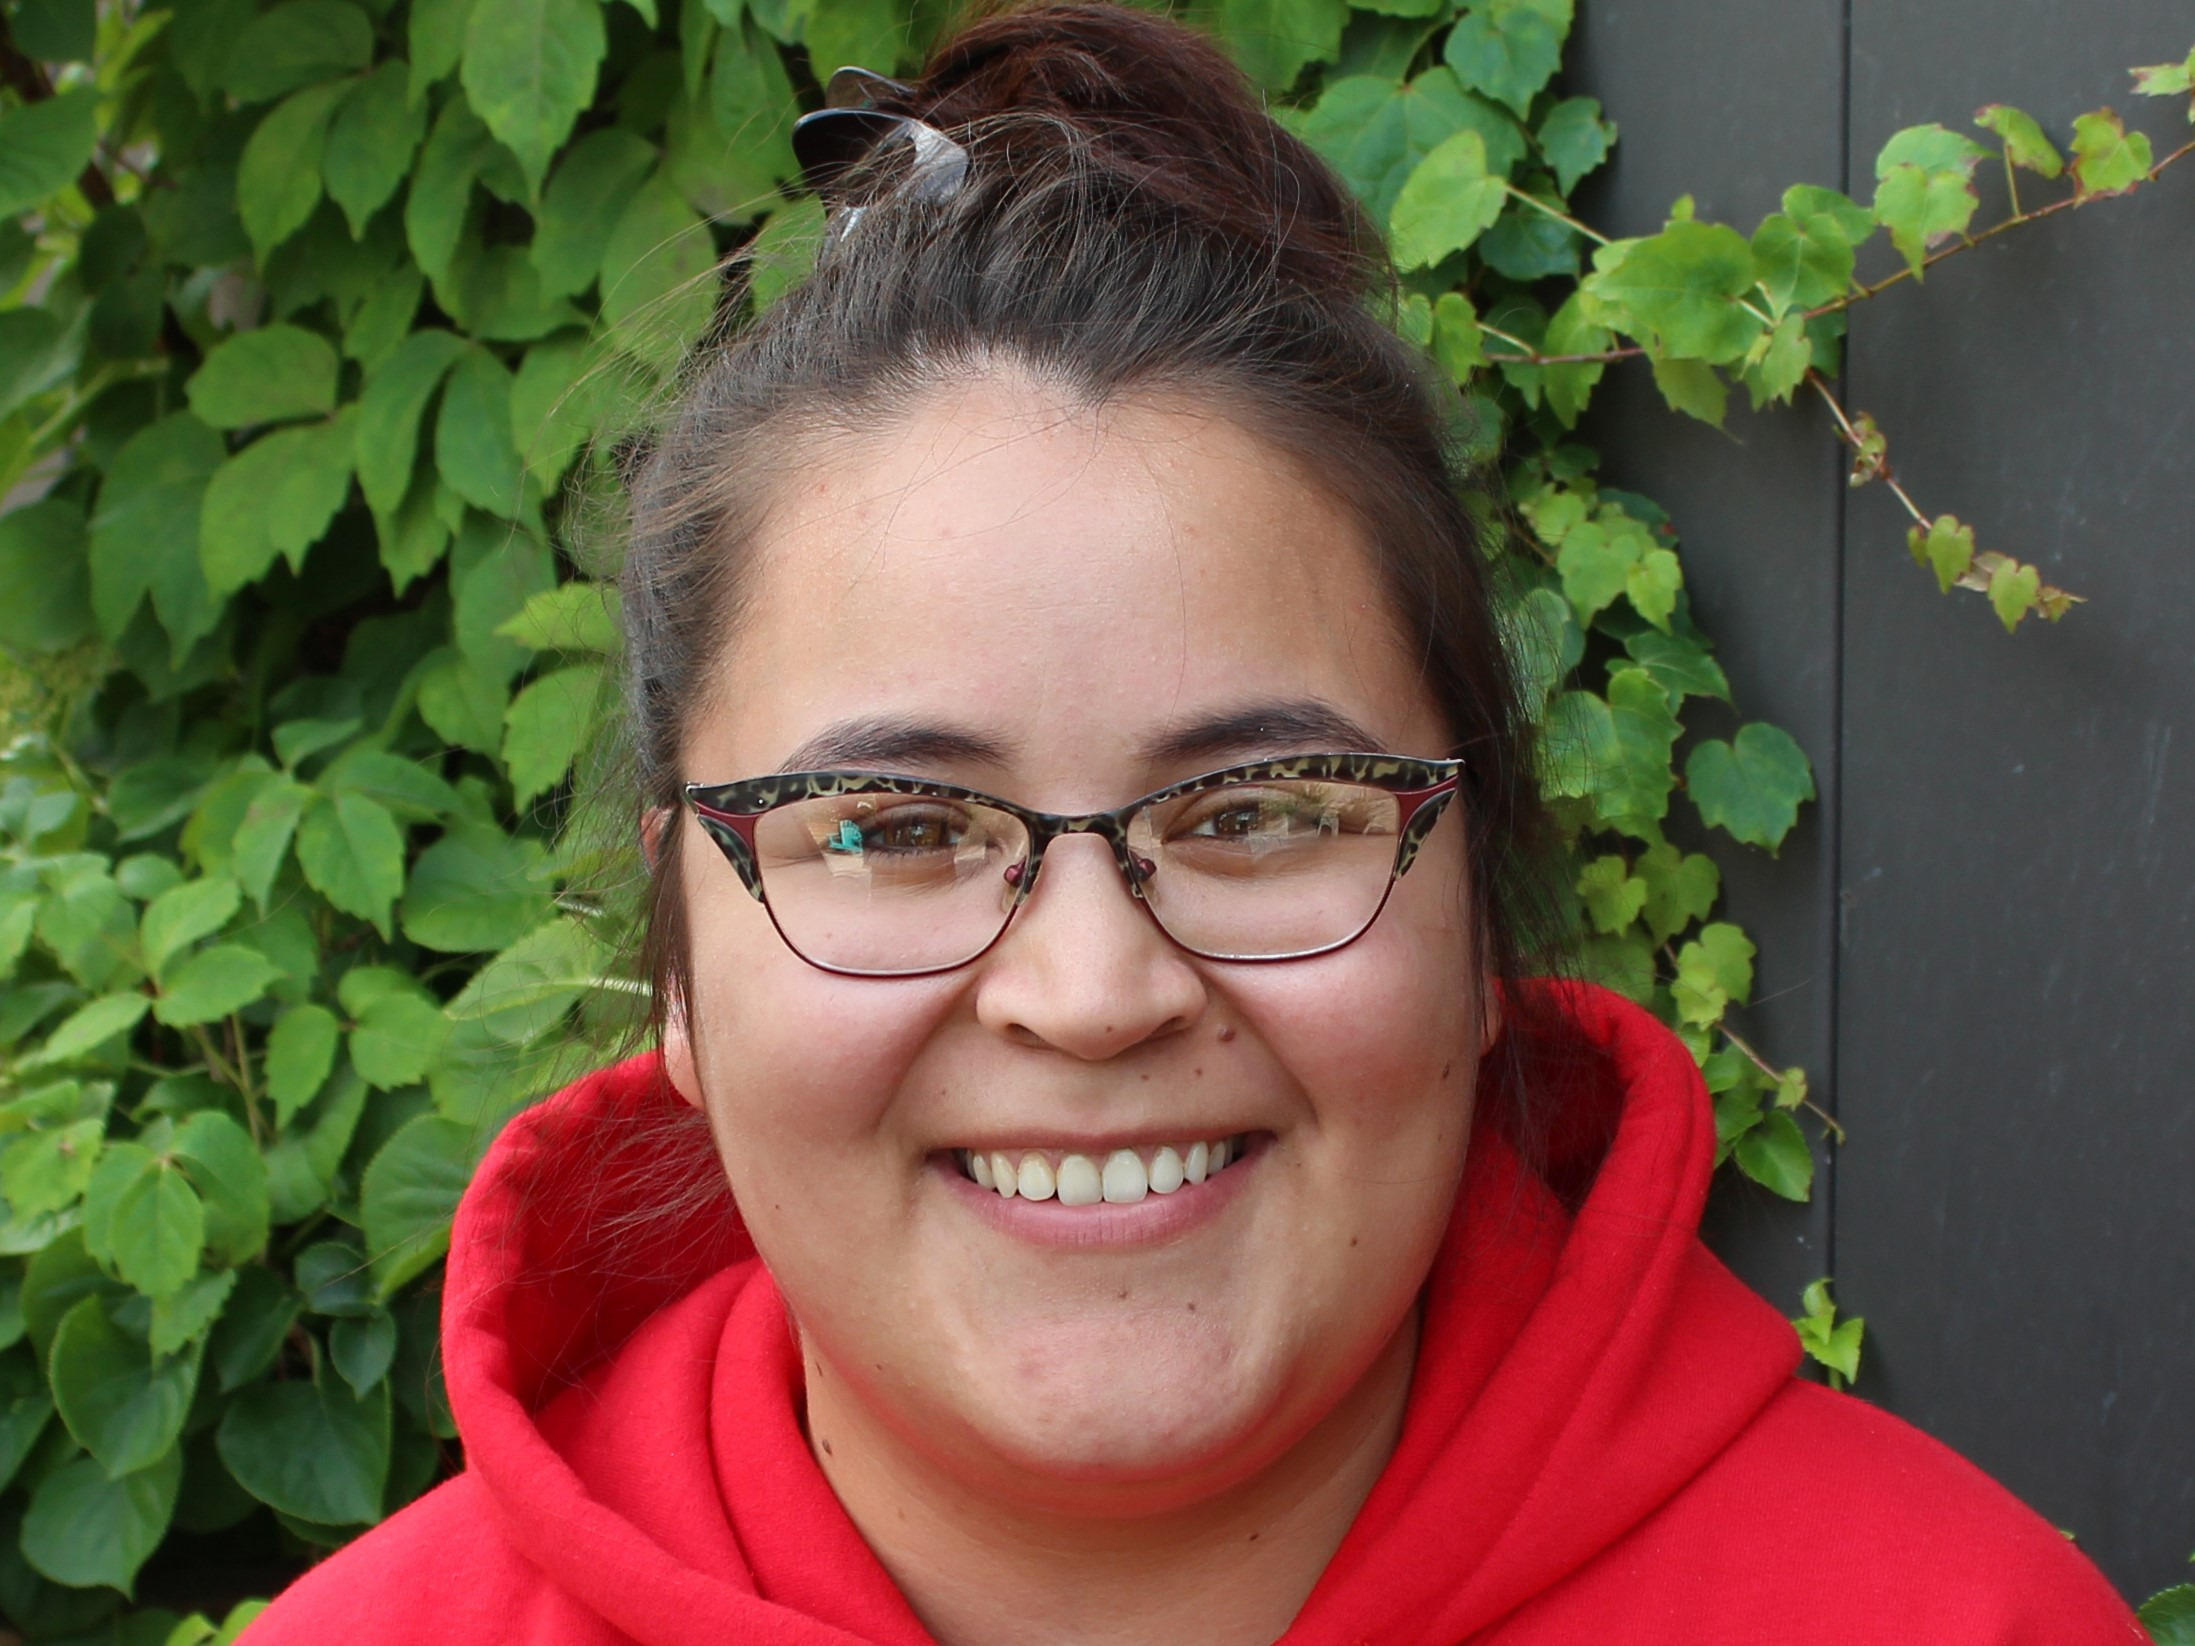 Dallayce Smith - Guest Services Assistantdallayce@imaginenative.orgAssists Guest Services Manager